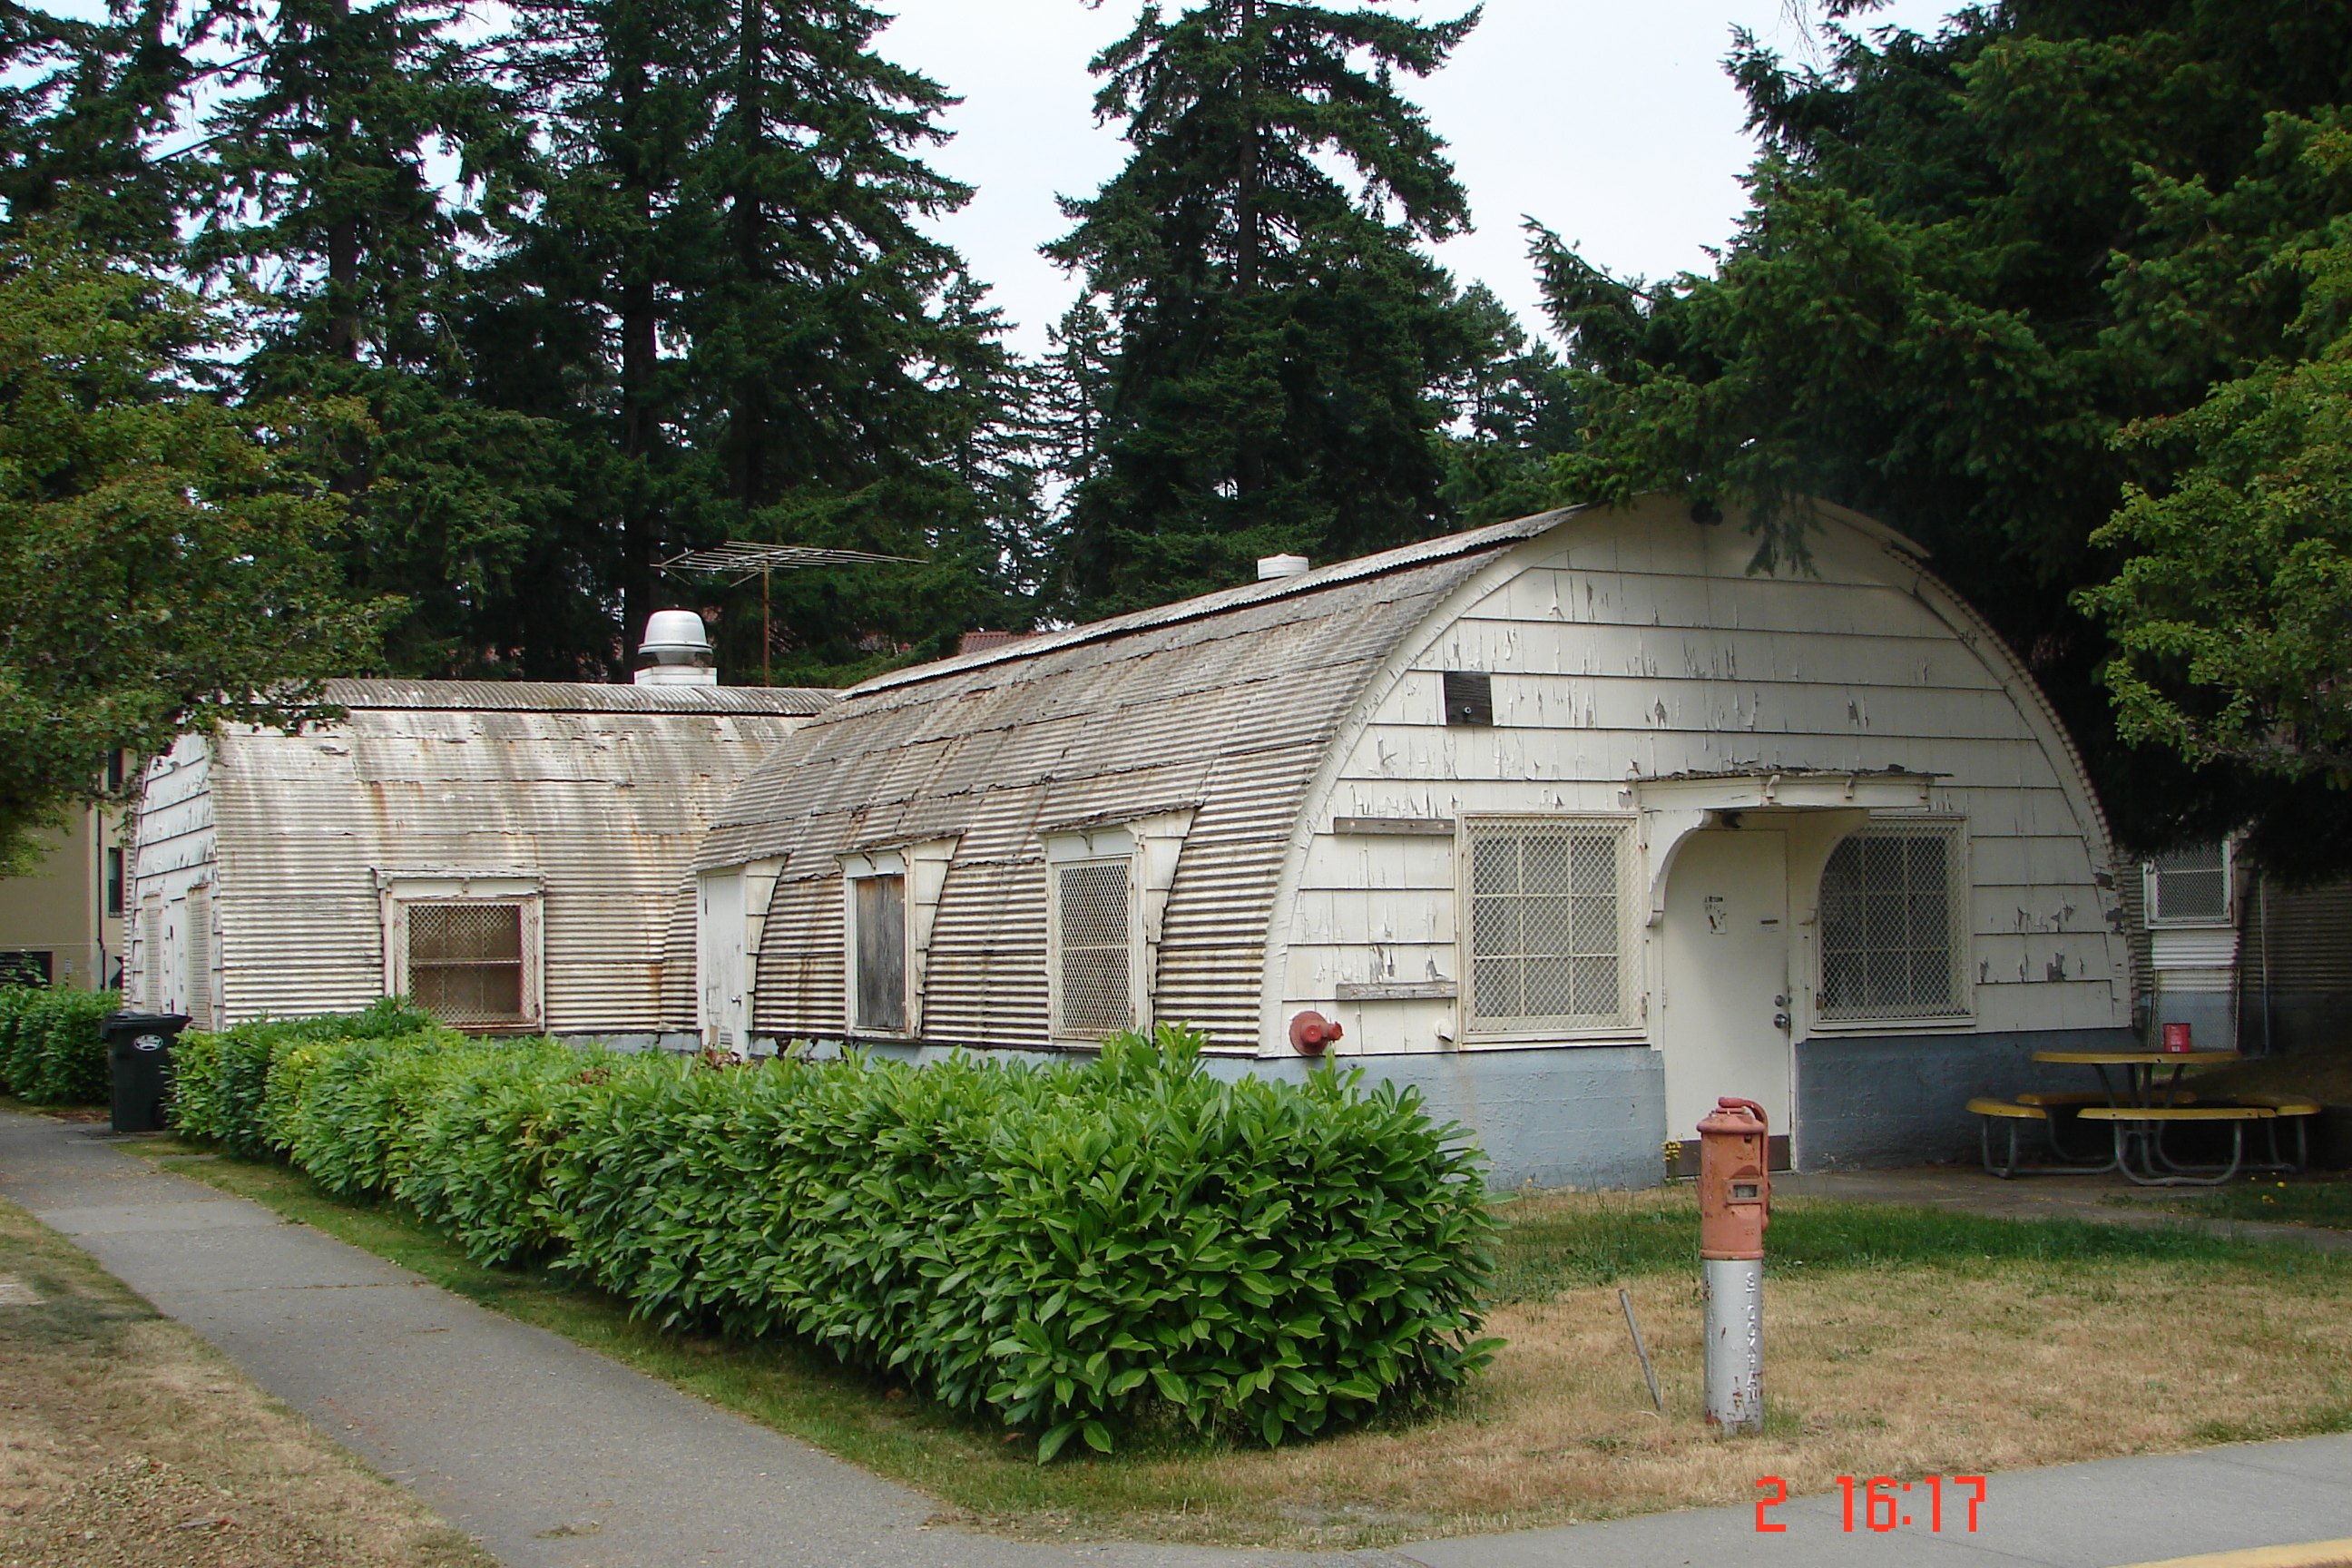 Military Surplus Quonset Huts For Sale >> Style Guide Quonset Huts 1941 To 1960 Washington State Dept Of